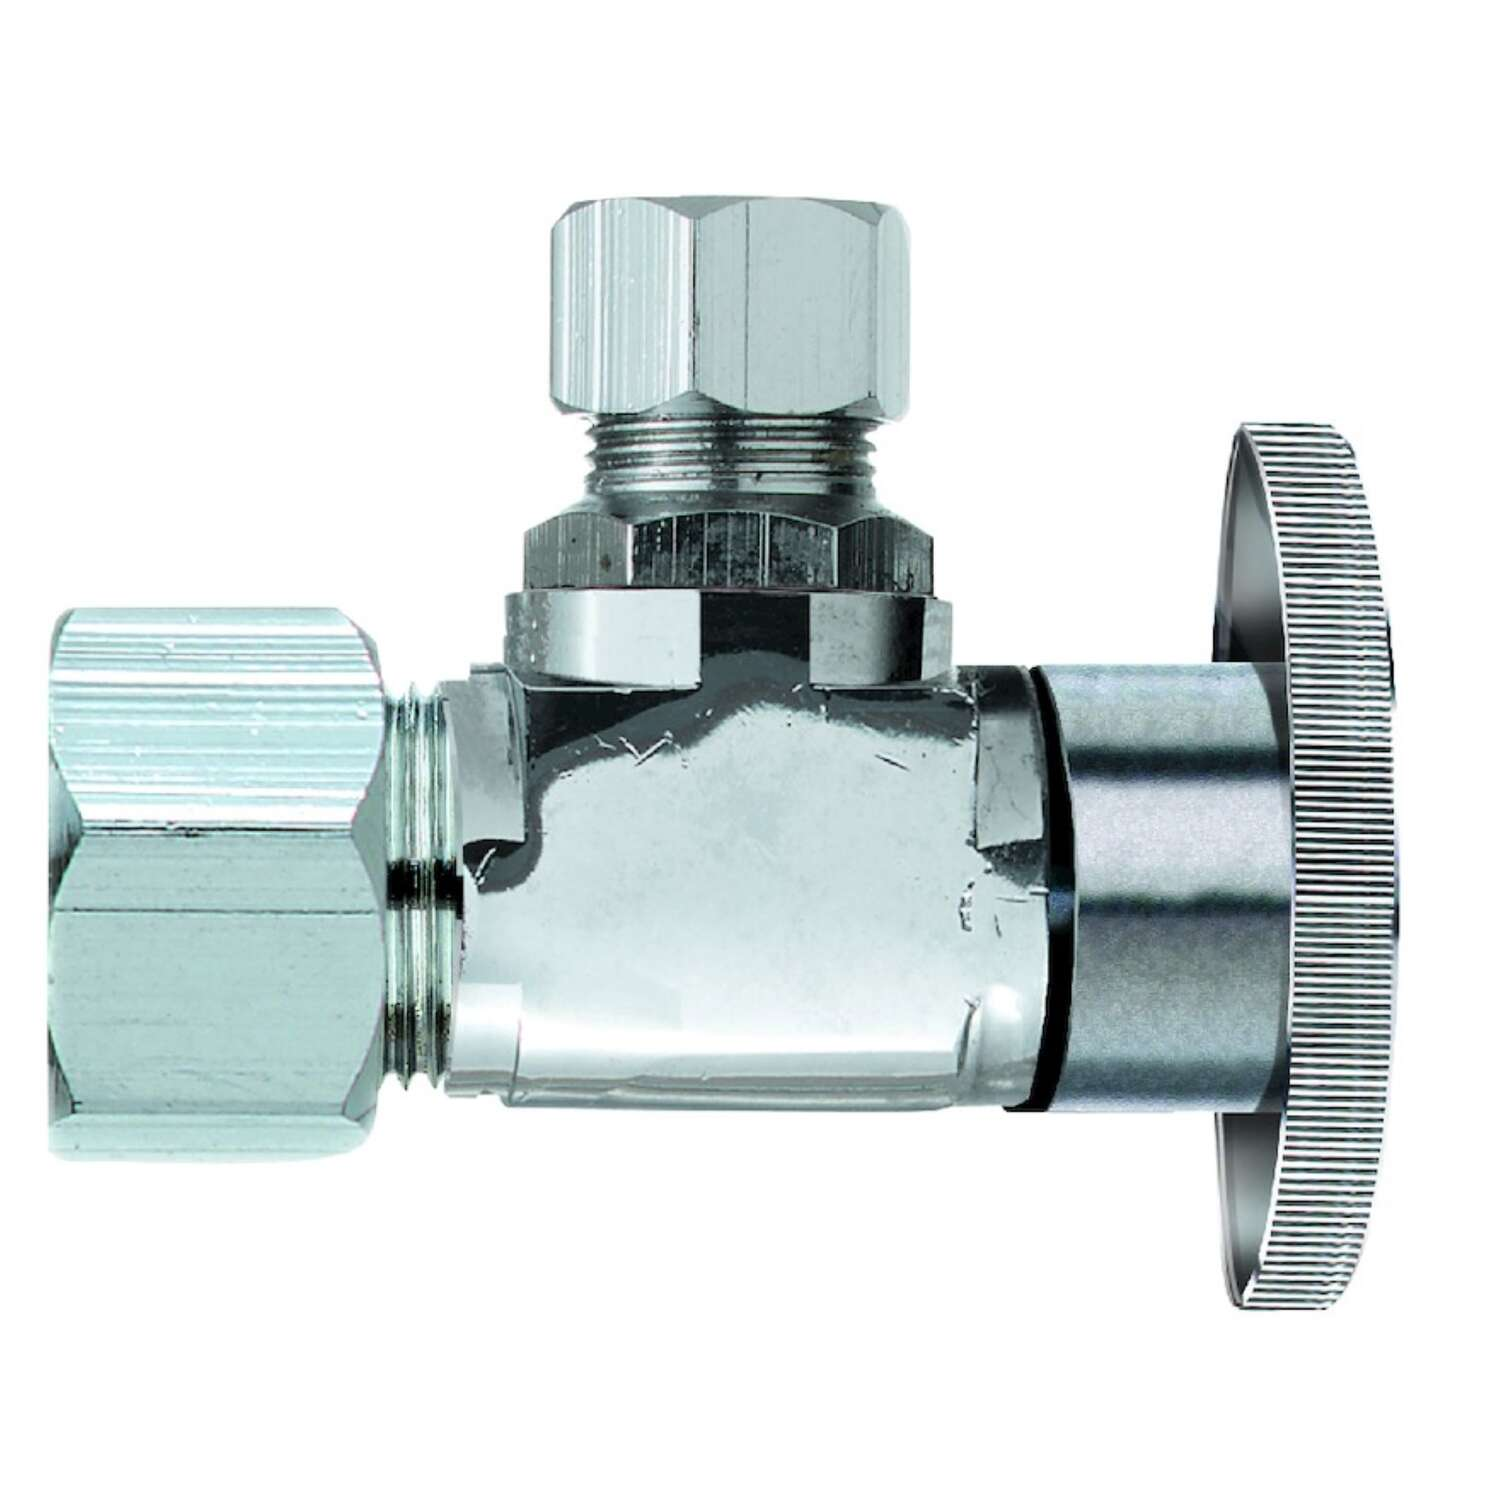 Keeney  5/8 in. Dia. x 1/2 in.  x 1/2 in. Dia. x 1/2 in.  Ball  Shut-Off Valve  Brass